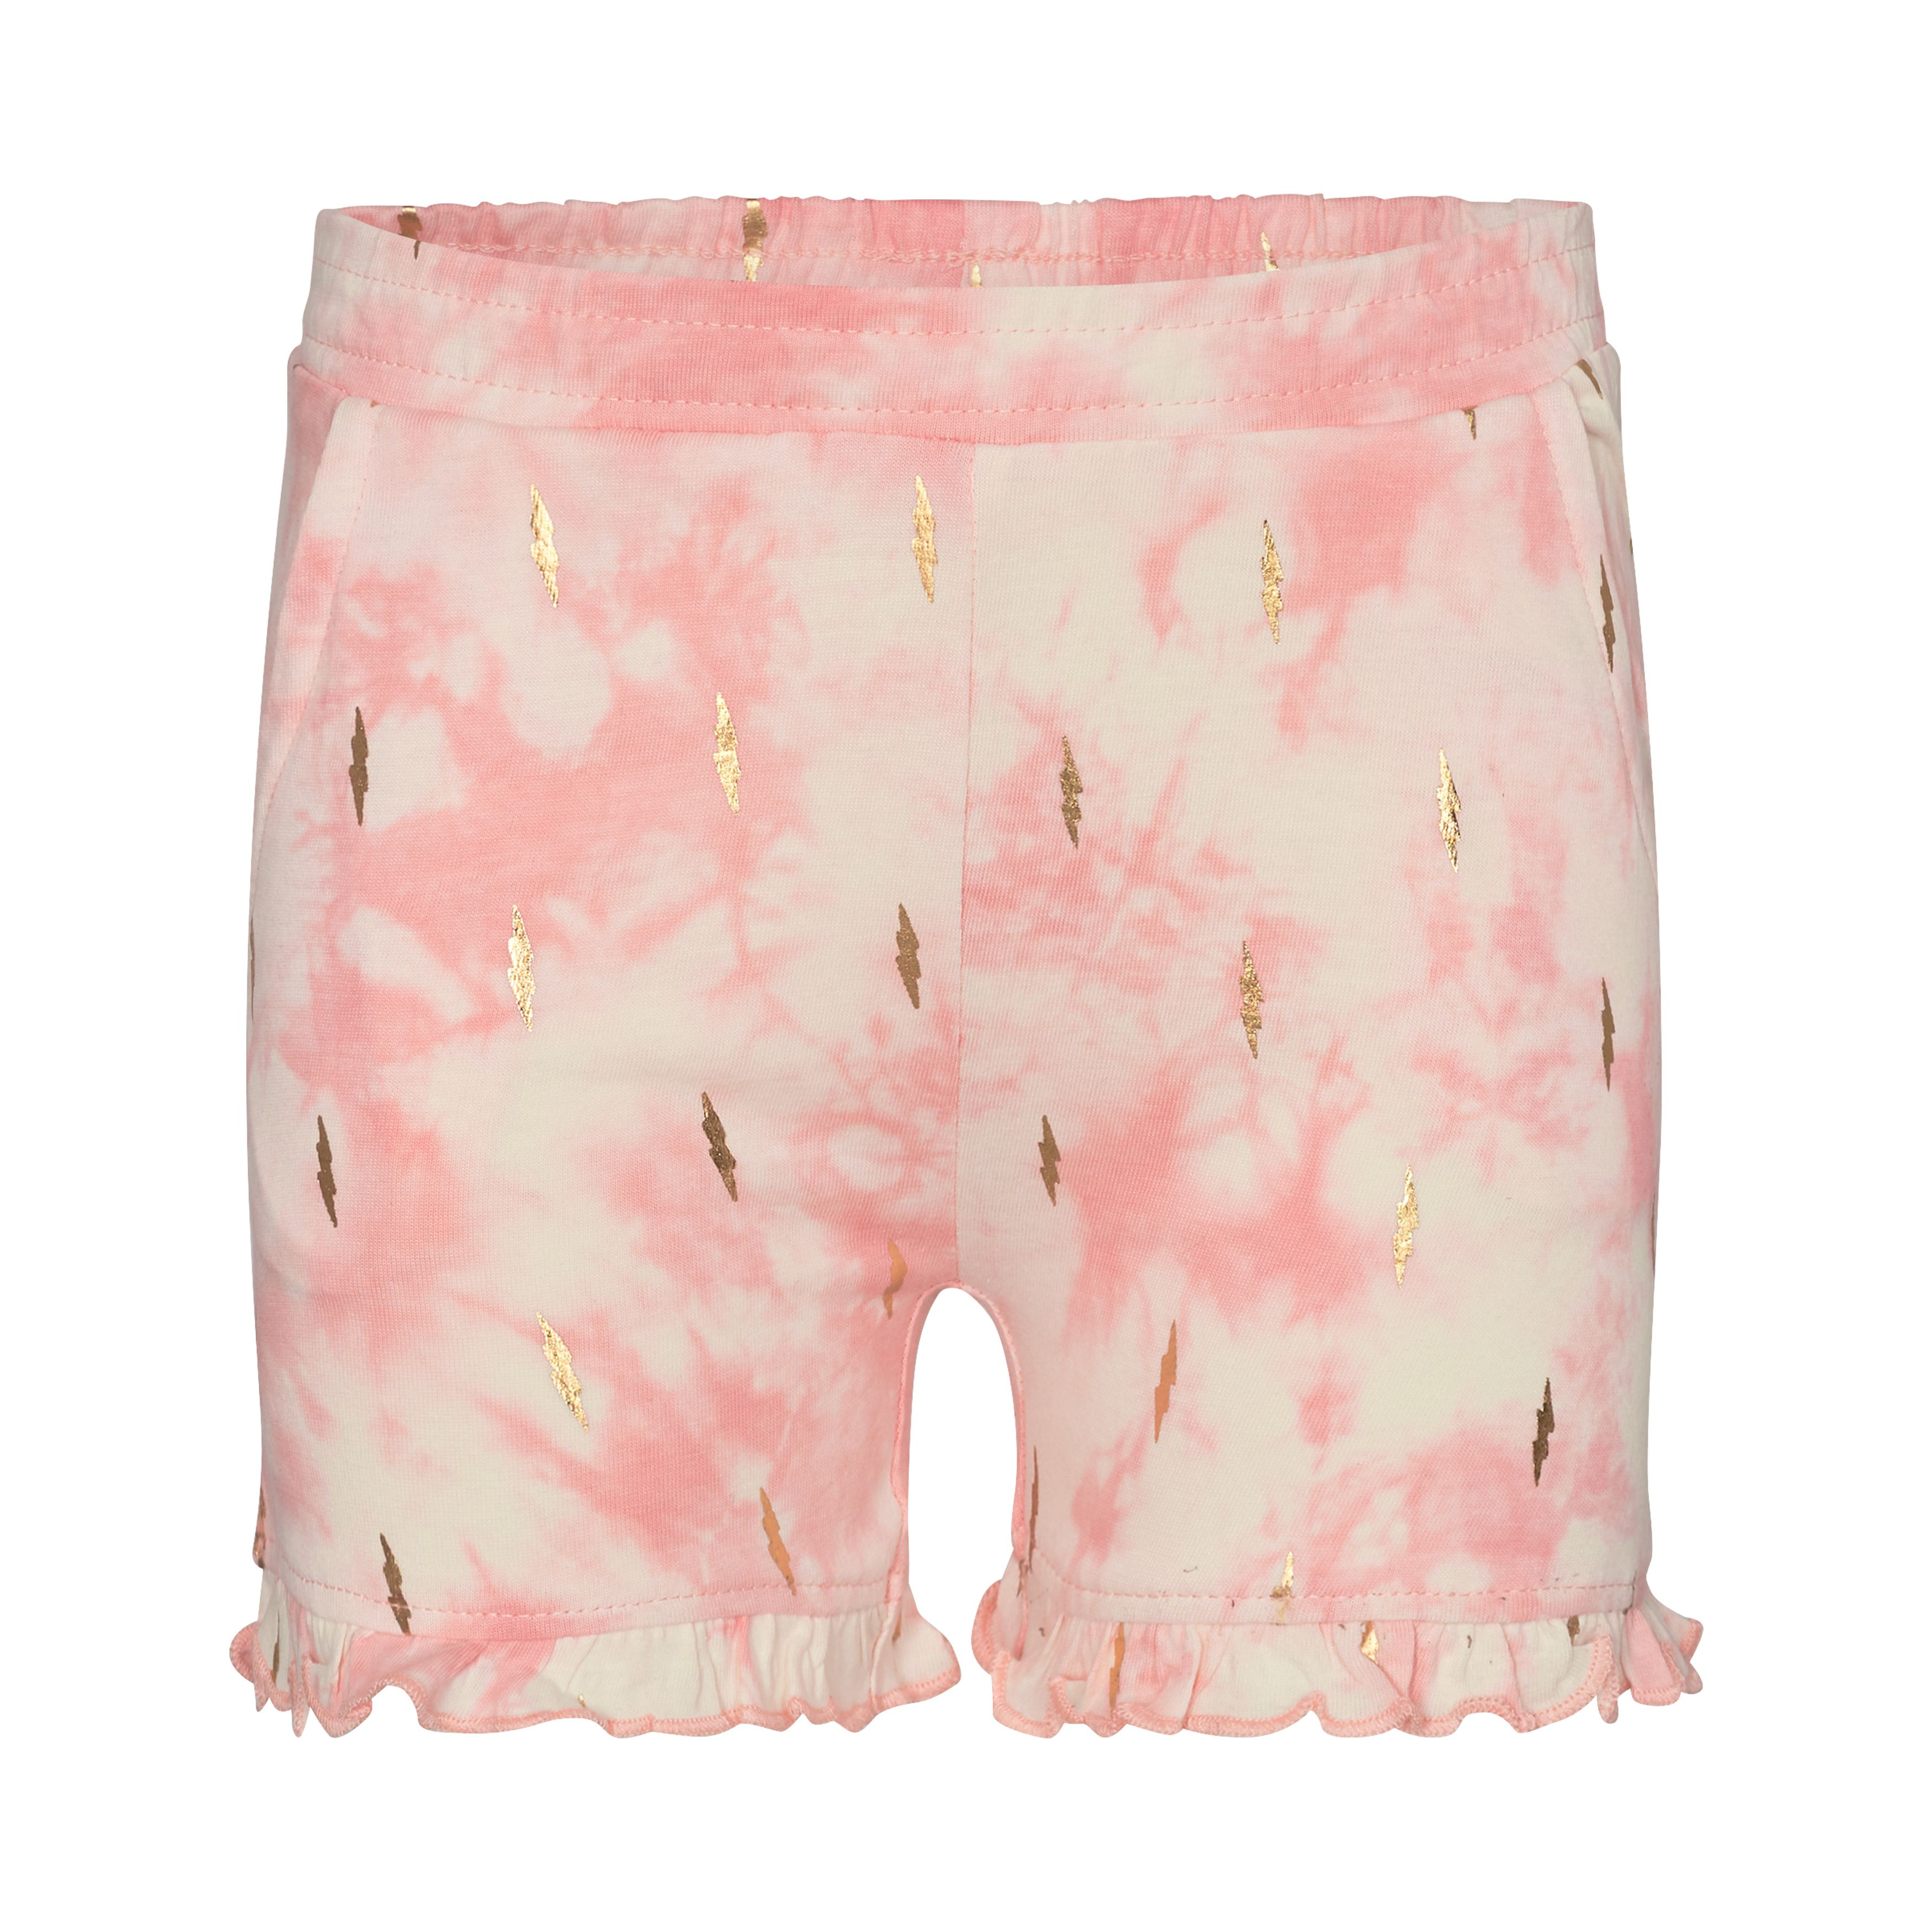 Petit by Sofie Schnoor P212620 shorts, coral, 92